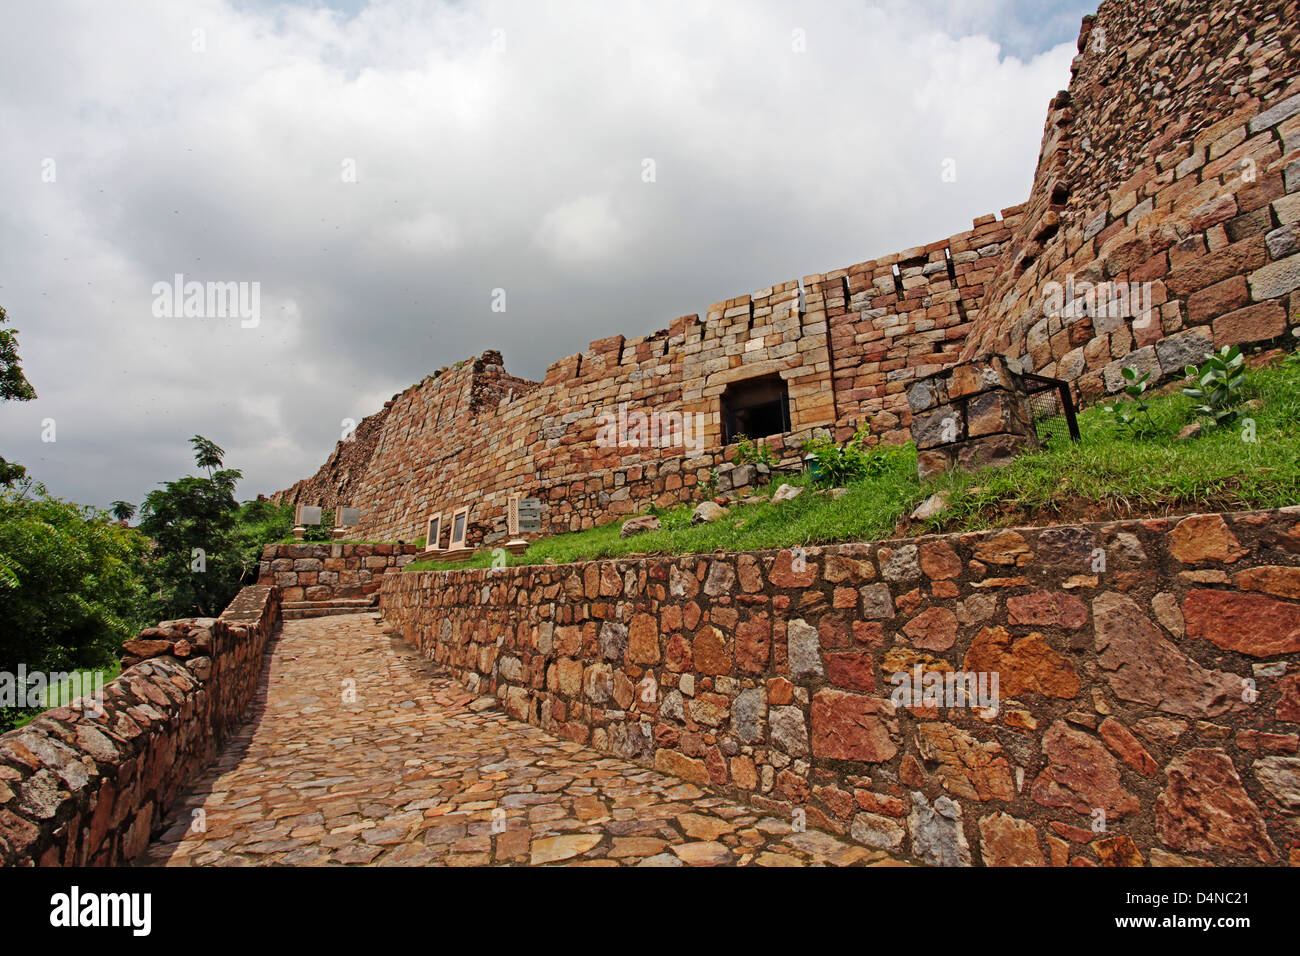 Tughlaqabad Fort is a ruined fort in Delhi, built by Ghiyas-ud-din Tughlaq, the founder of Tughlaq dynasty, in 1321 - Stock Image